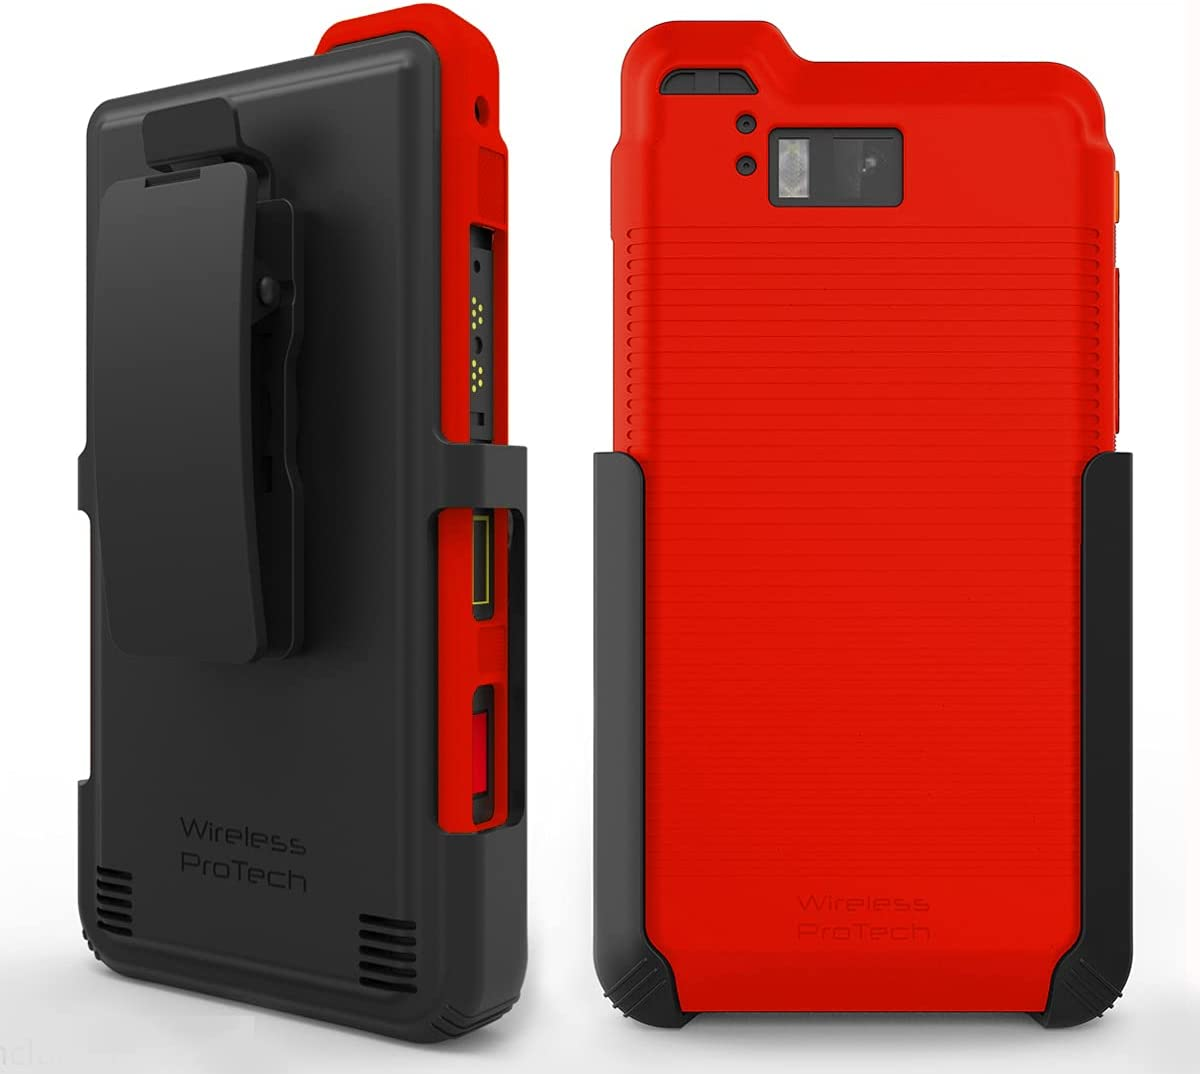 Wireless ProTech Case with Clip Compatible with Sonim XP8 Phone Model XP8800. Heavy Duty Rotating Belt Clip Holster and Durable Flexible Protective Case Combo (Red)